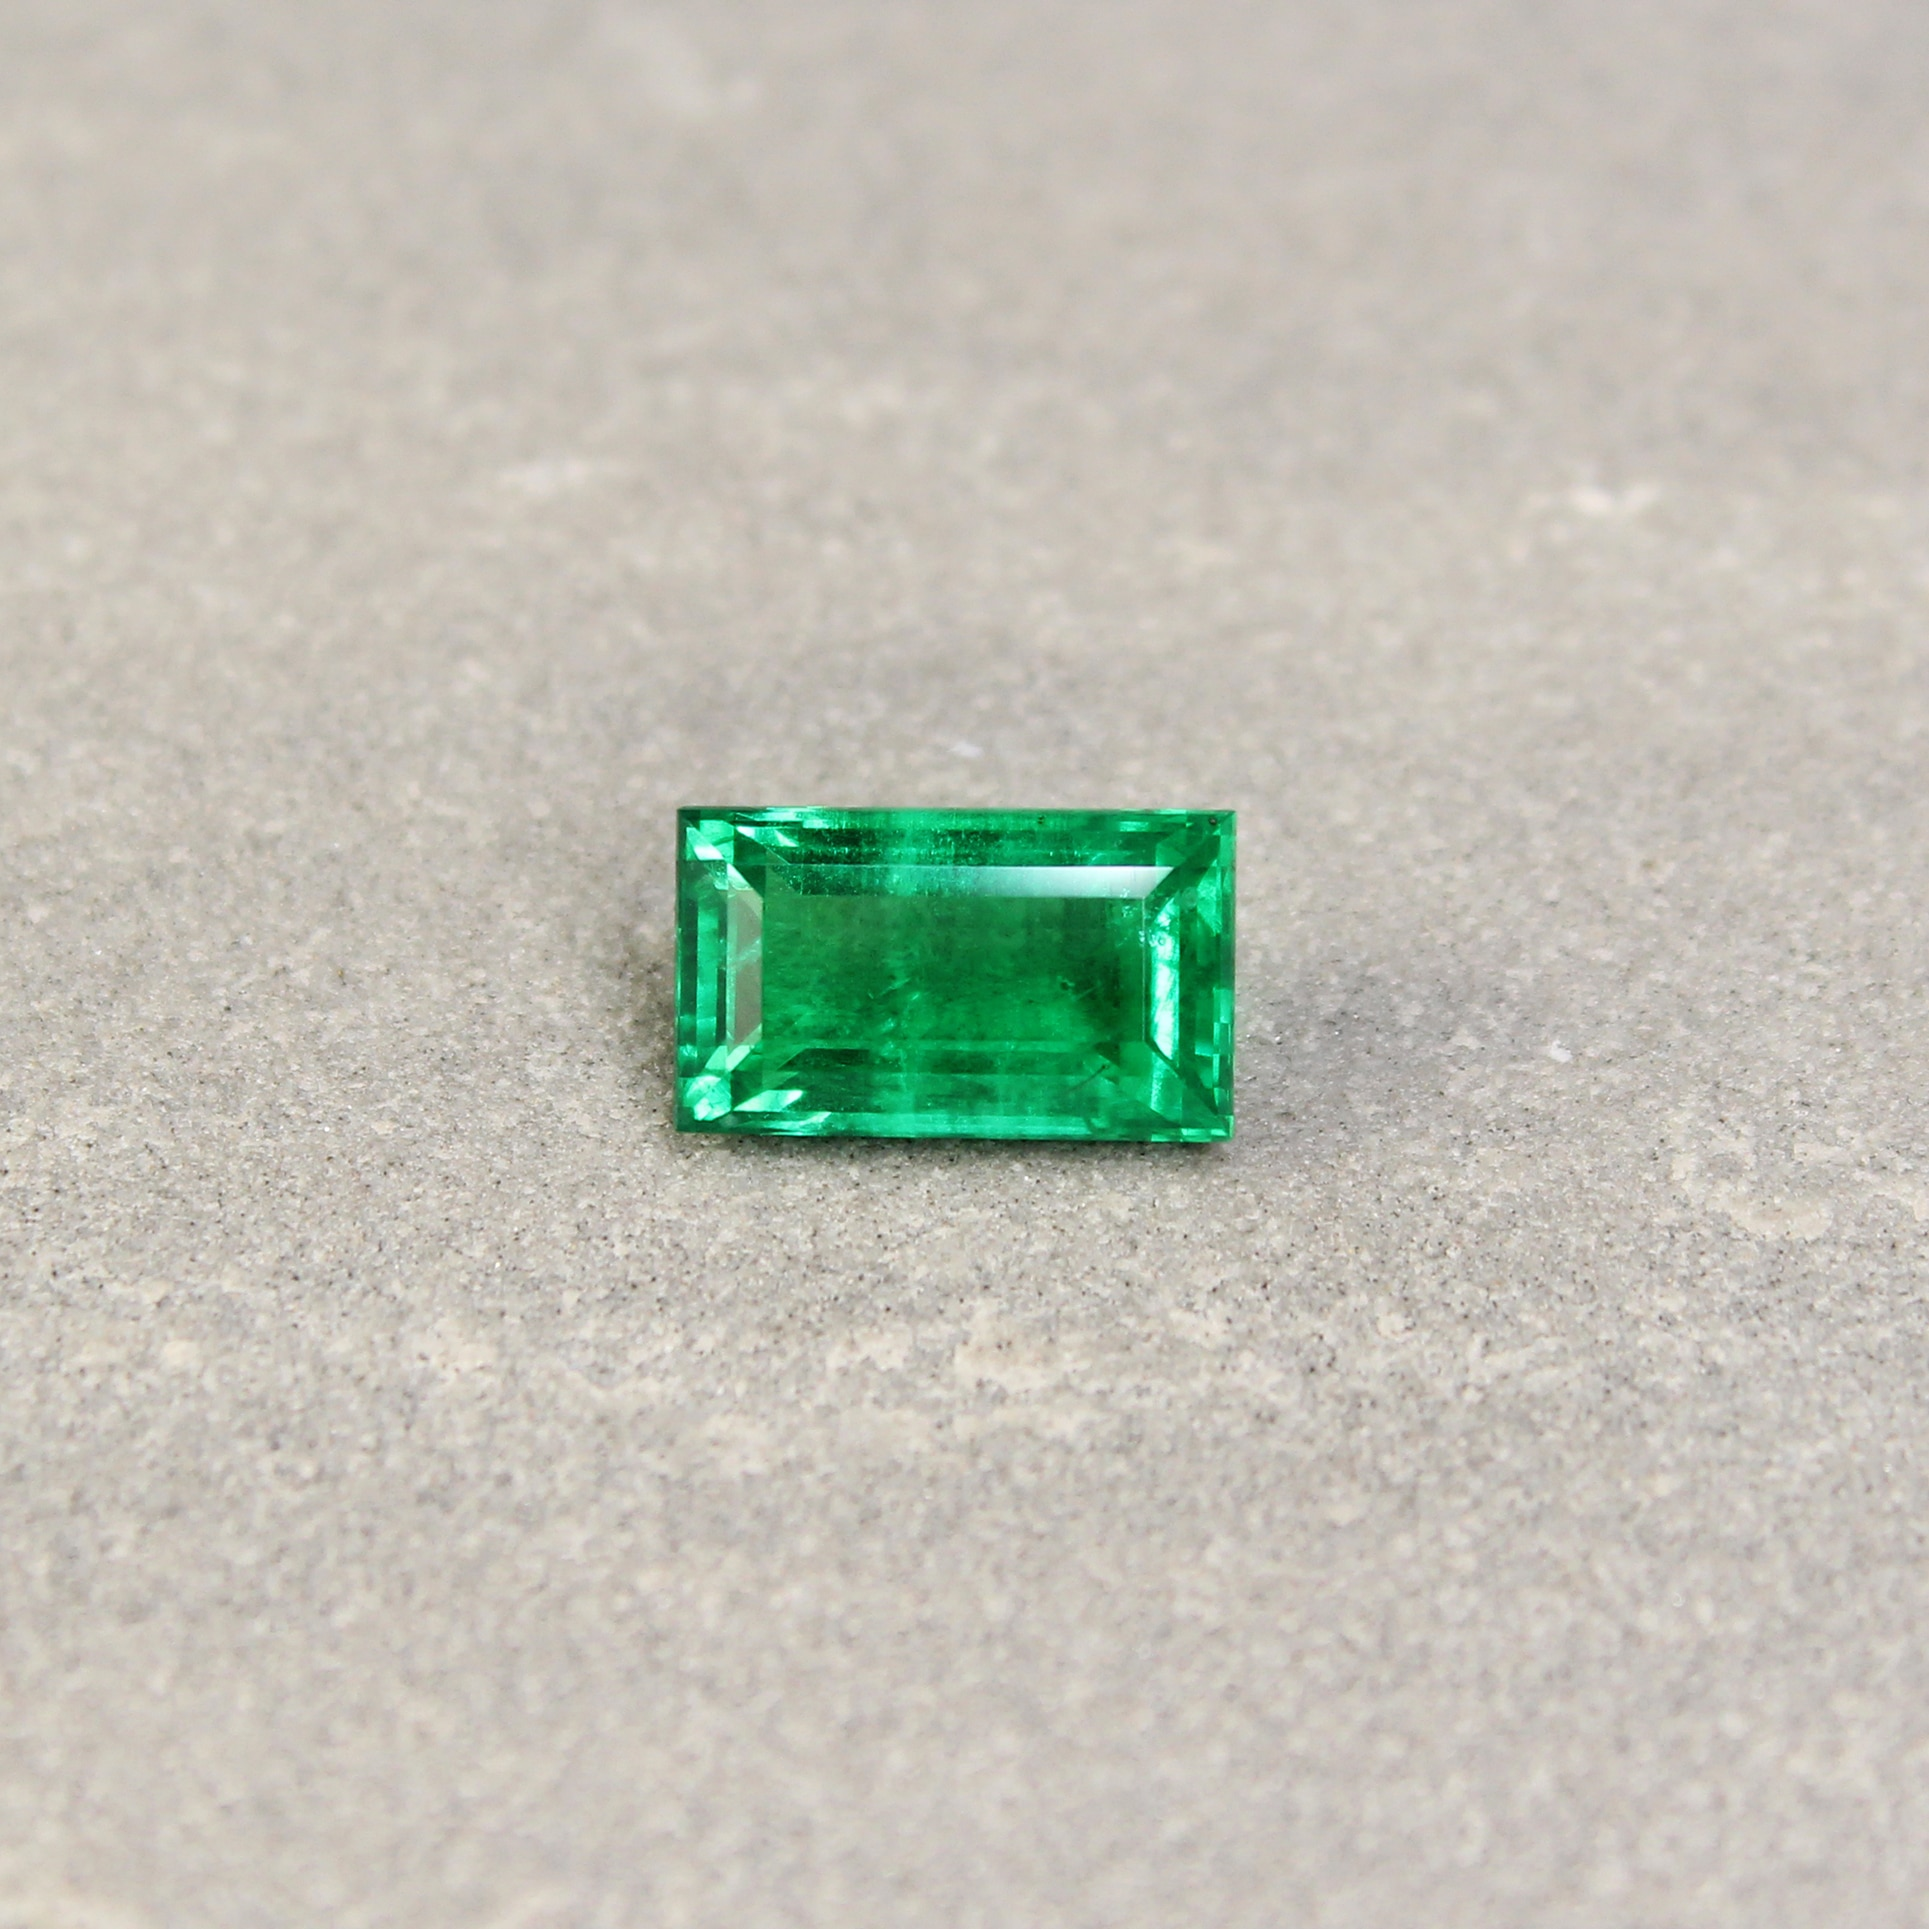 2.24 ct green baguette emerald